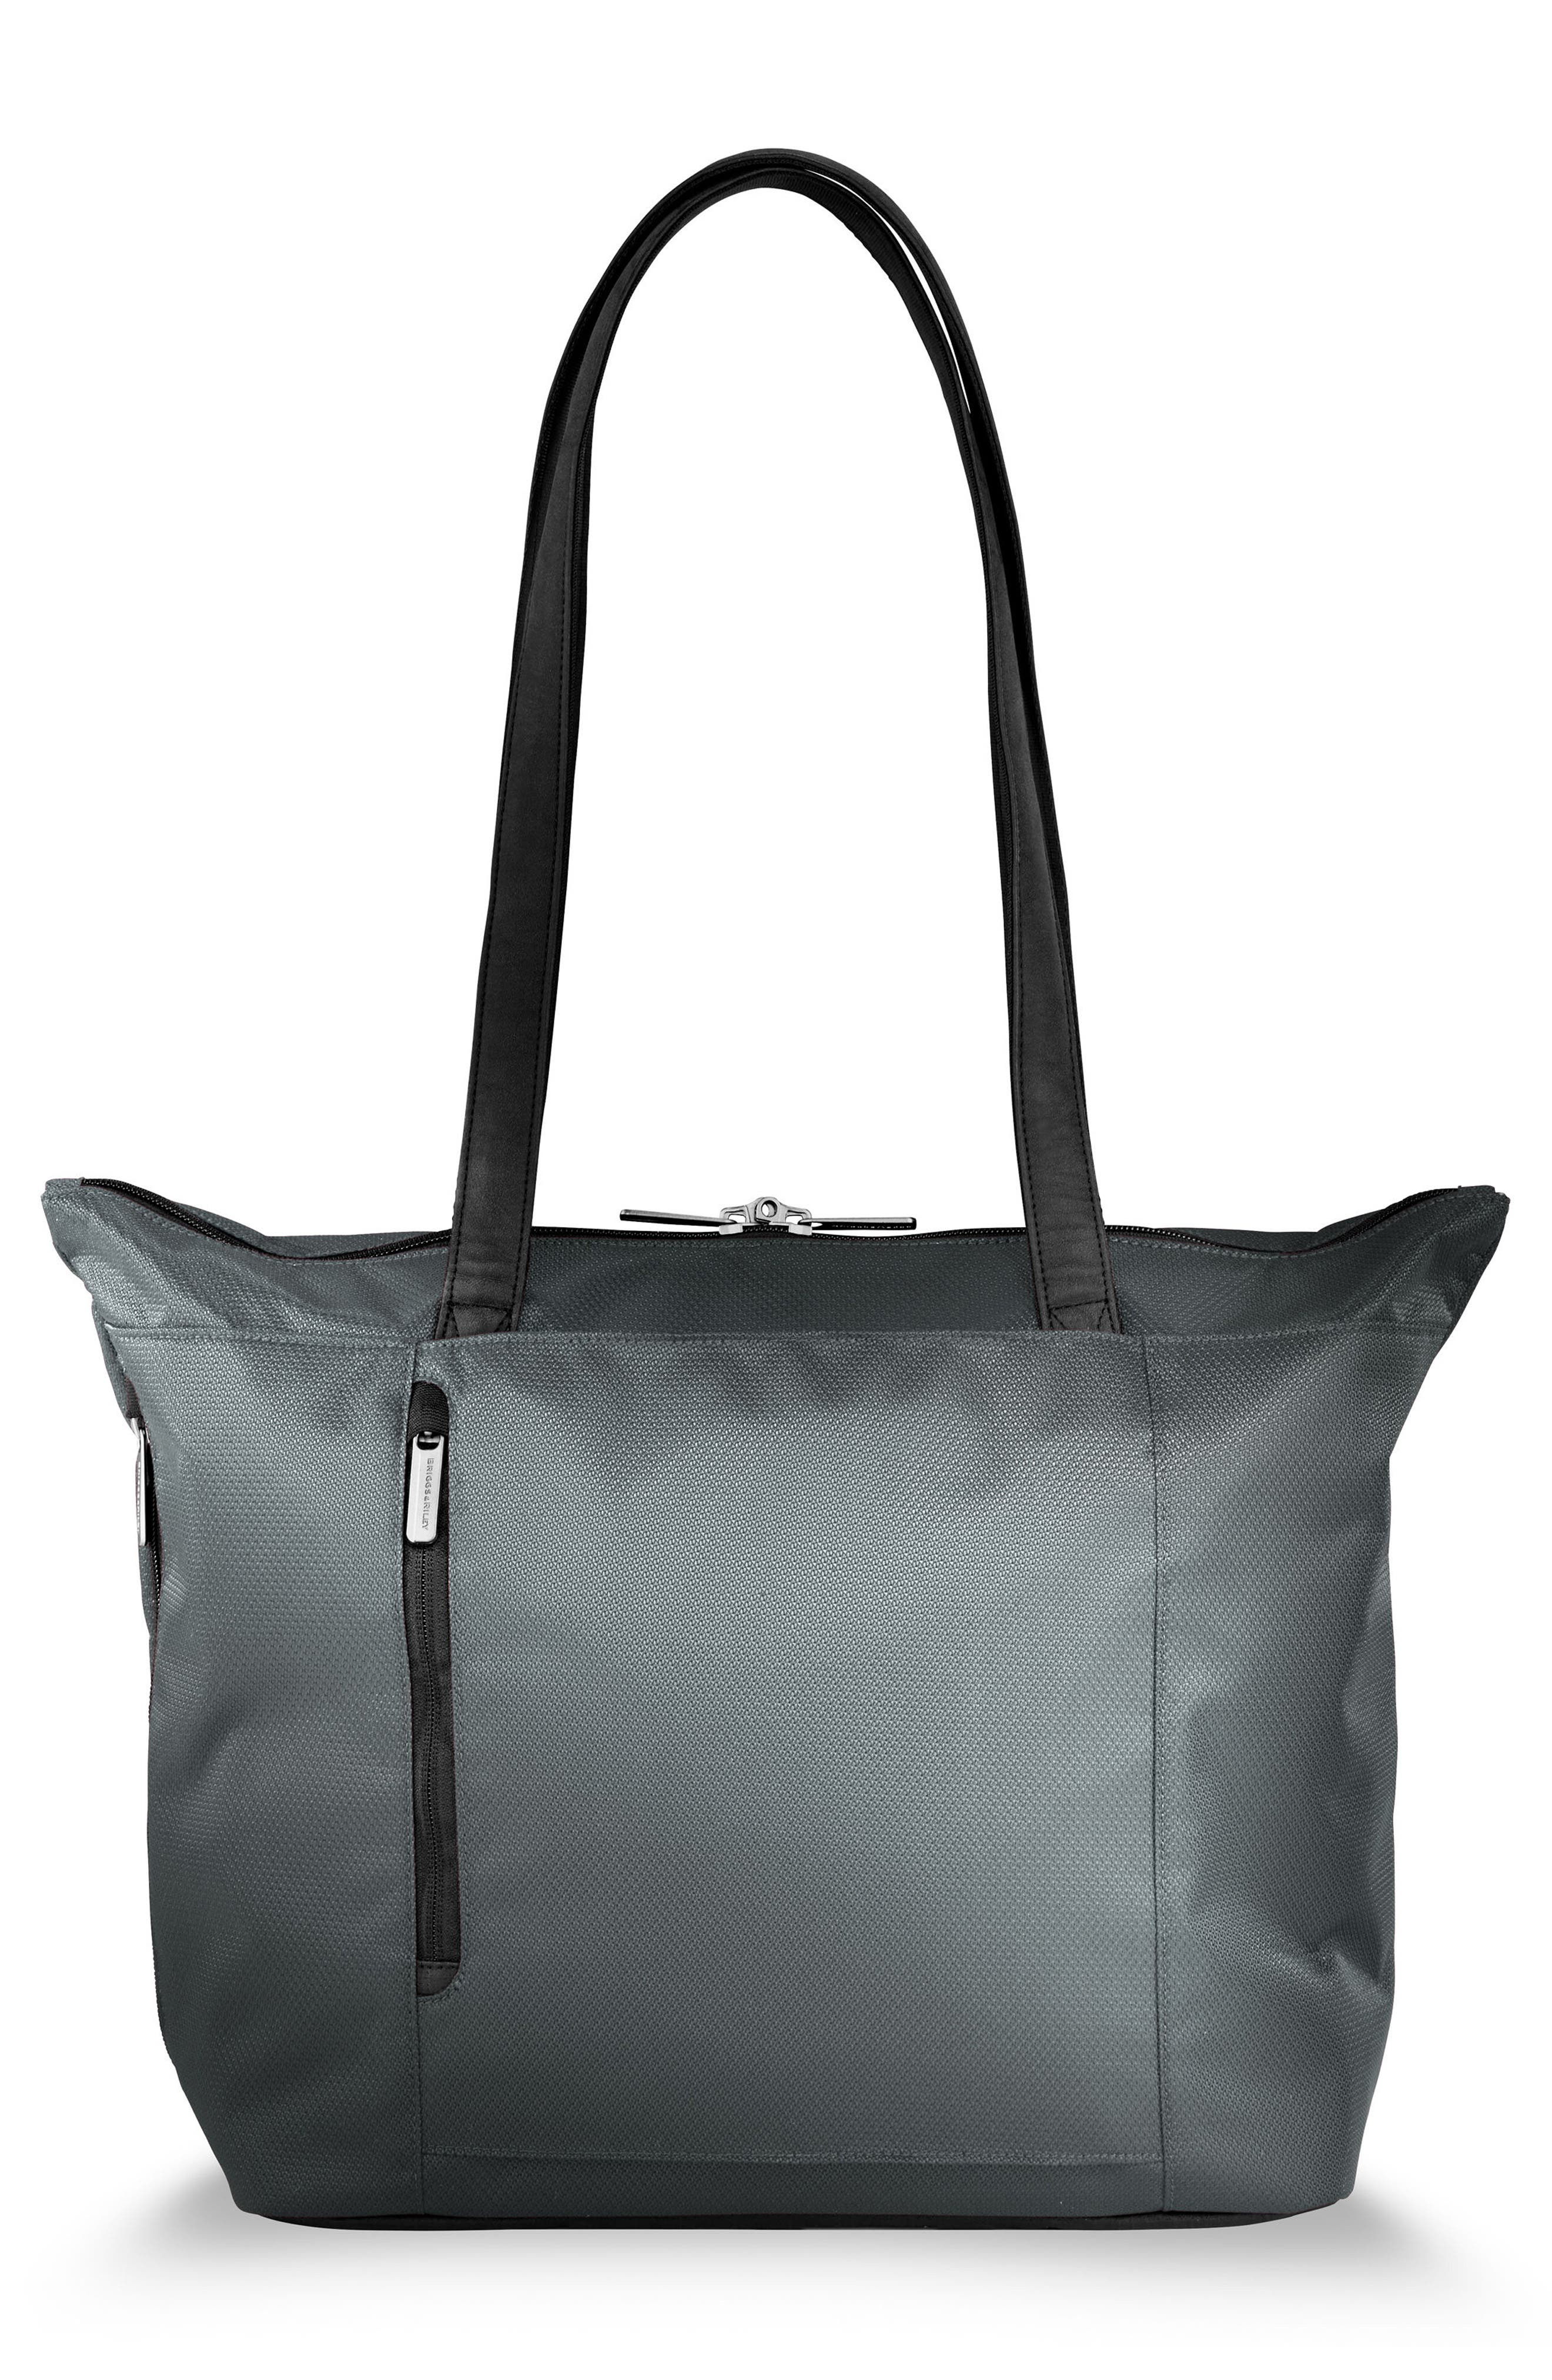 BRIGGS & RILEY,                             Transcend 400 Tote Bag,                             Alternate thumbnail 2, color,                             SLATE GREY